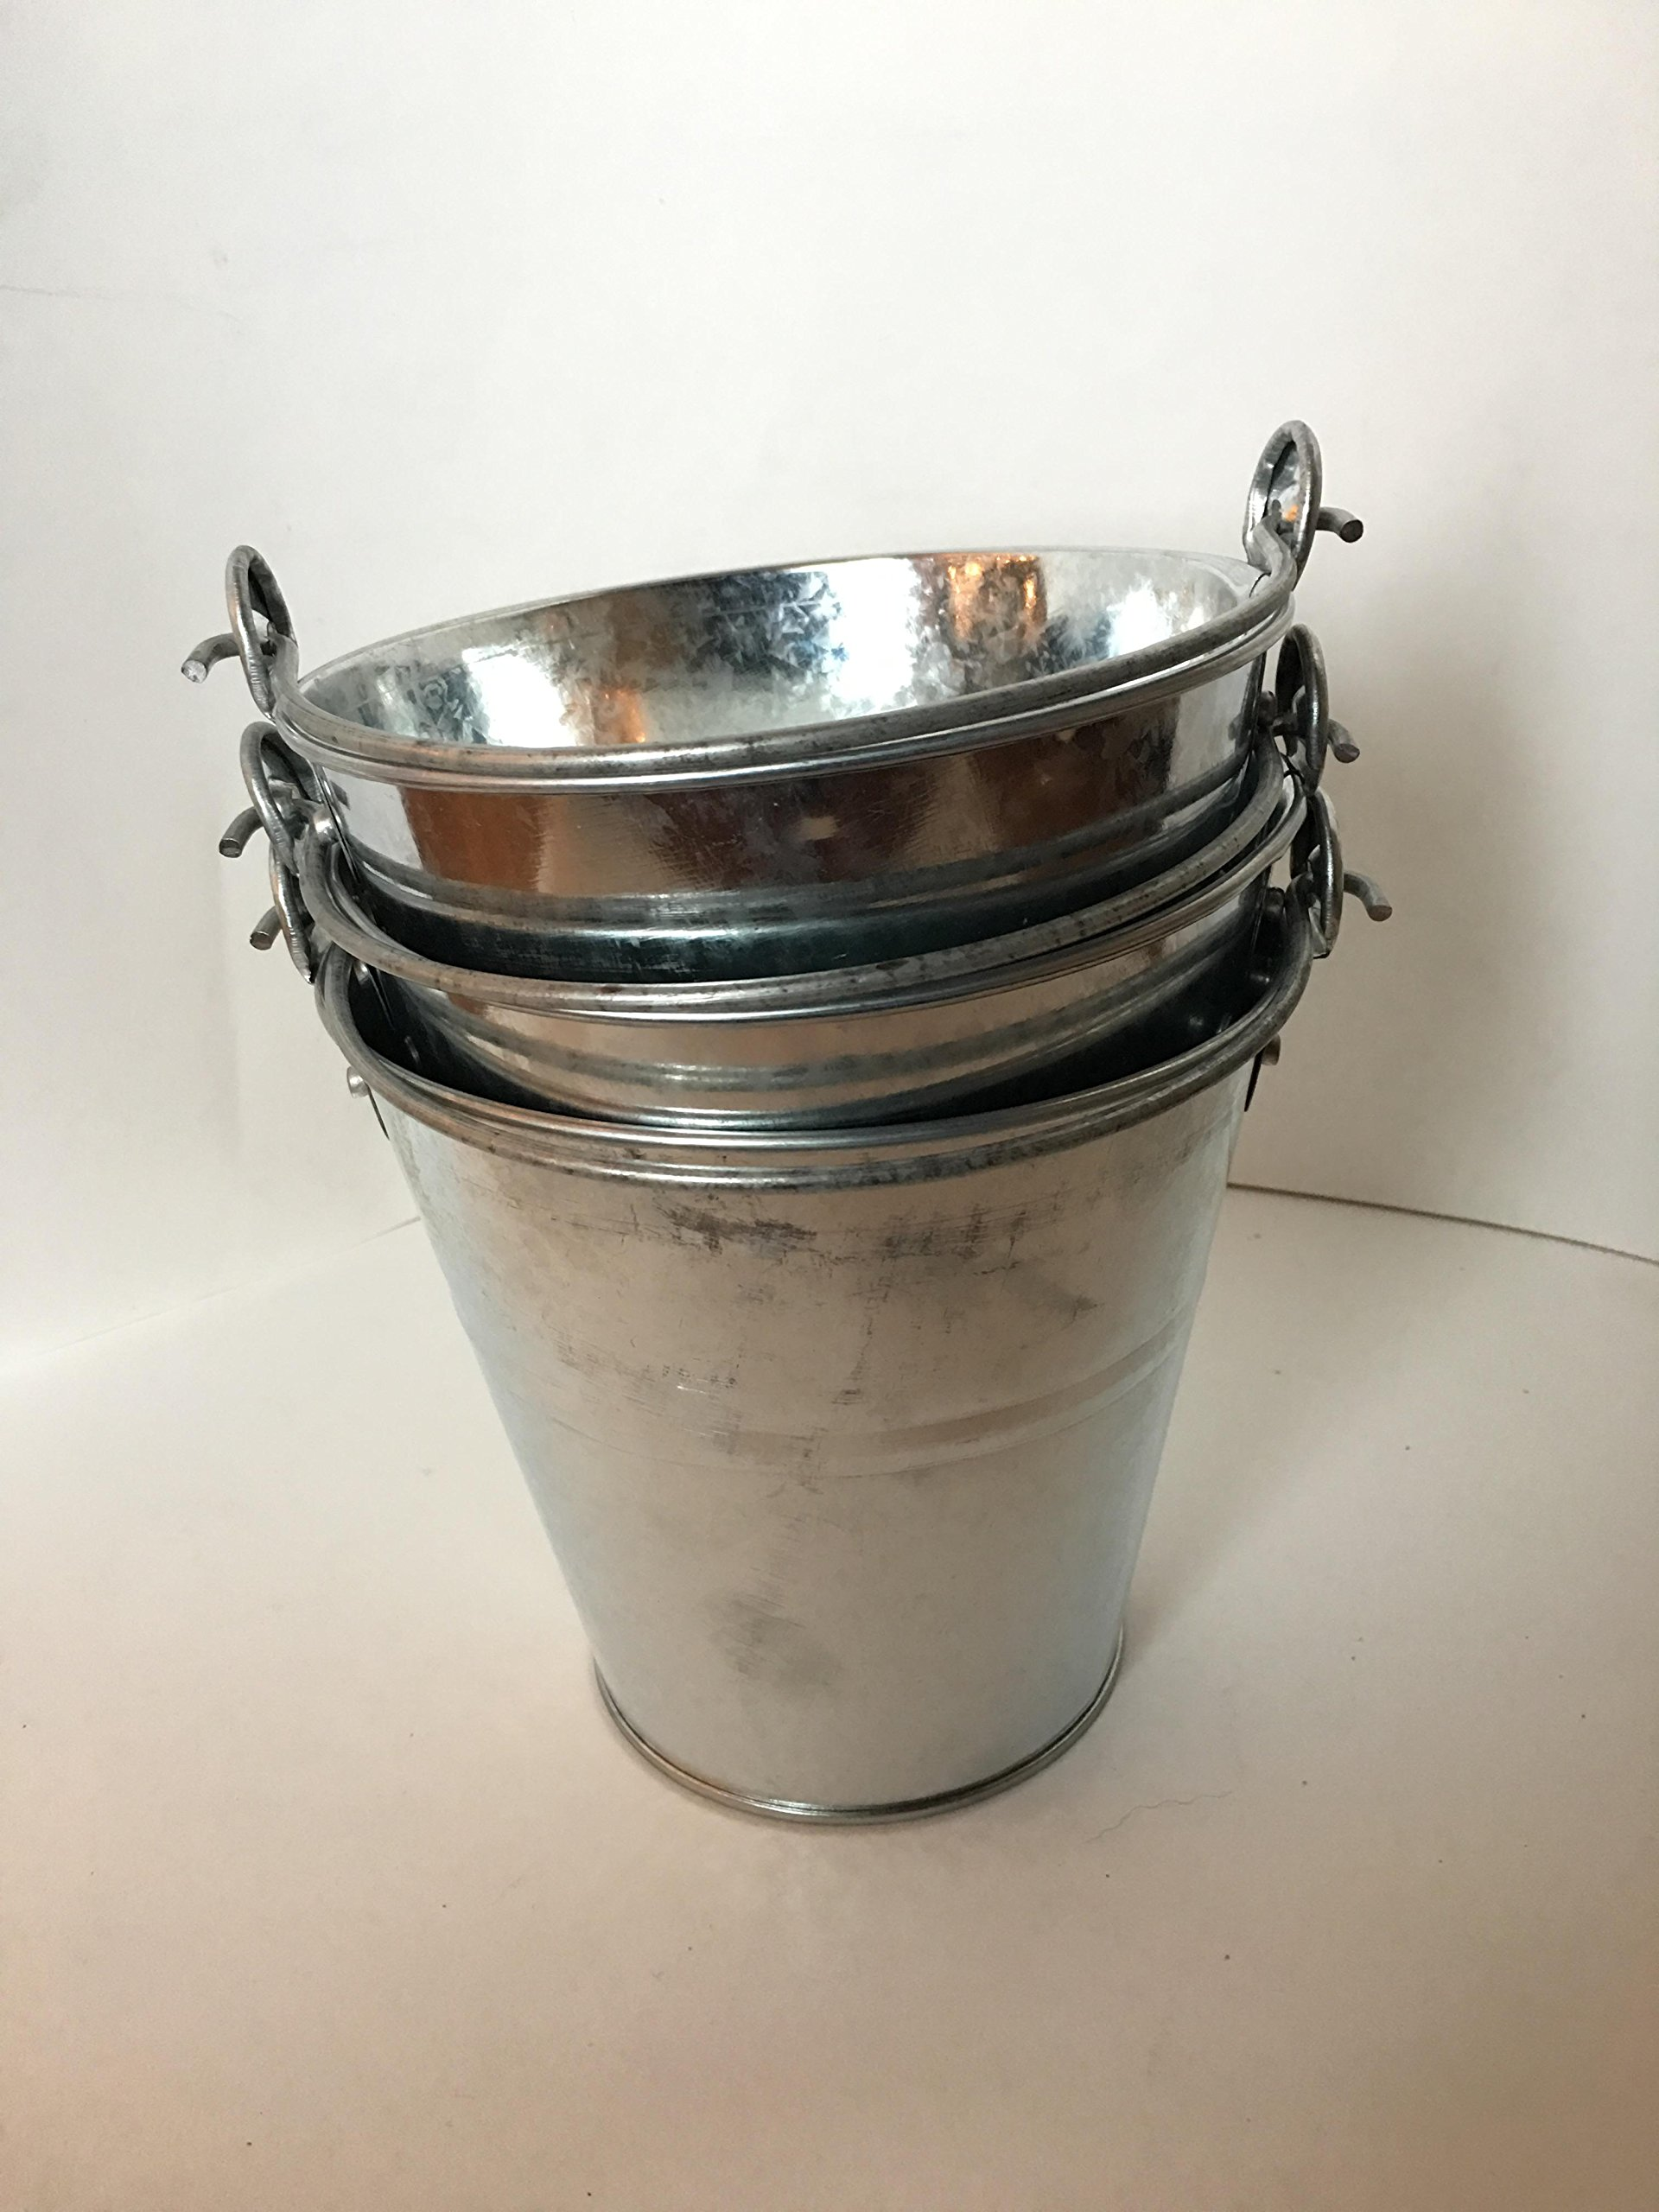 10 LARGE Galvanized BUCKETS 6'' TALL 6.25'' WIDE AT TOP 4'' WIDE AT BOTTOM ARTS CRAFTS WEDDING by DIRECT IGNITER (Image #1)